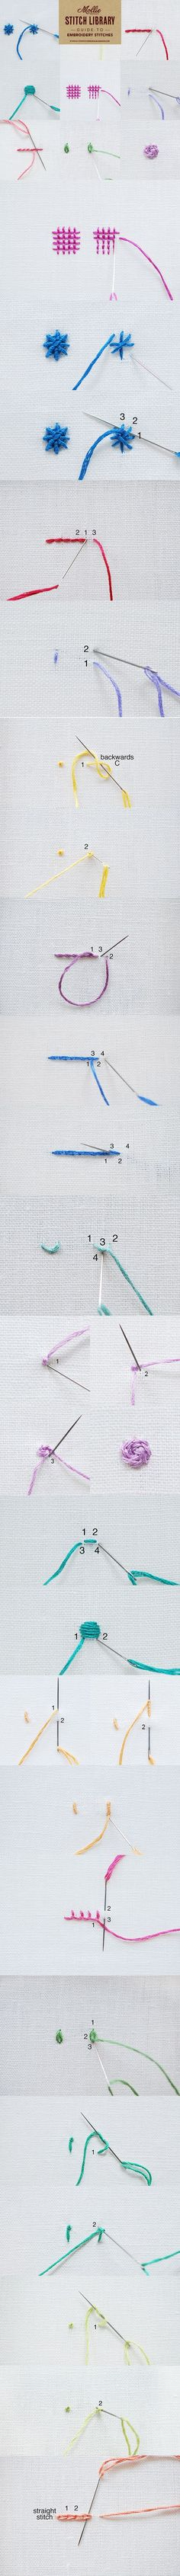 Knitting Patterns Stitches Learn 17 embroidery stitches with our handy guide. Bookmark or Pin this page for future reference or. Embroidery Designs, Hand Embroidery Stitches, Embroidery Techniques, Ribbon Embroidery, Cross Stitch Embroidery, Cross Stitch Patterns, Embroidery Art, Knitting Patterns, Sewing Hacks